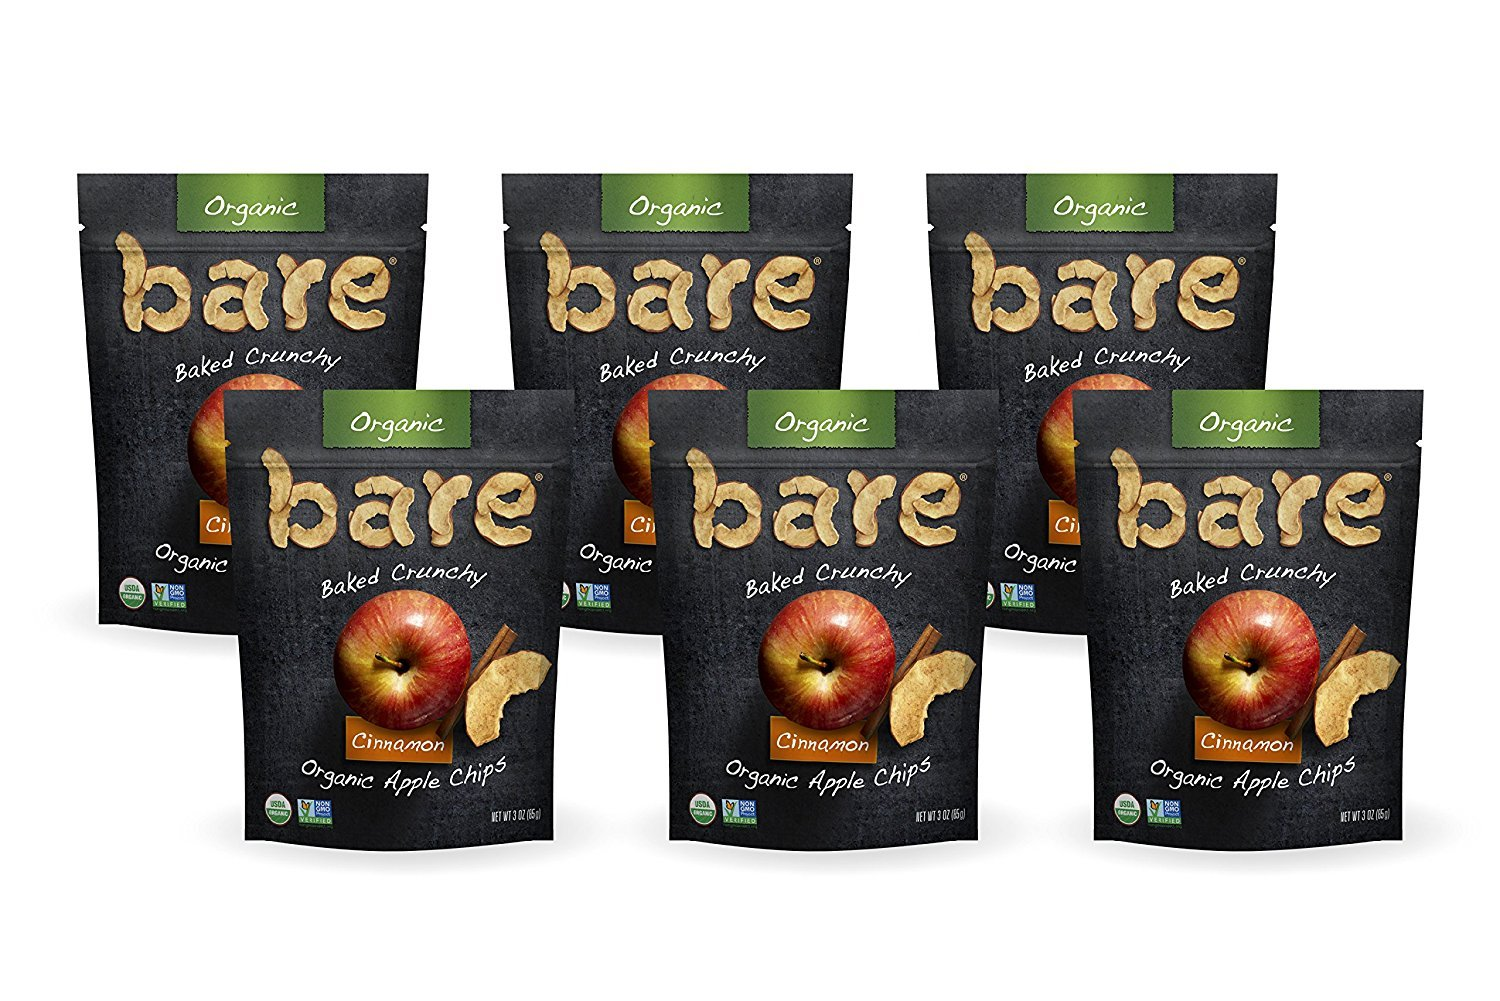 Bare Baked Crunchy Organic Apple Chips, Cinnamon, Gluten Free, 3 Ounce Bag, 6 Count